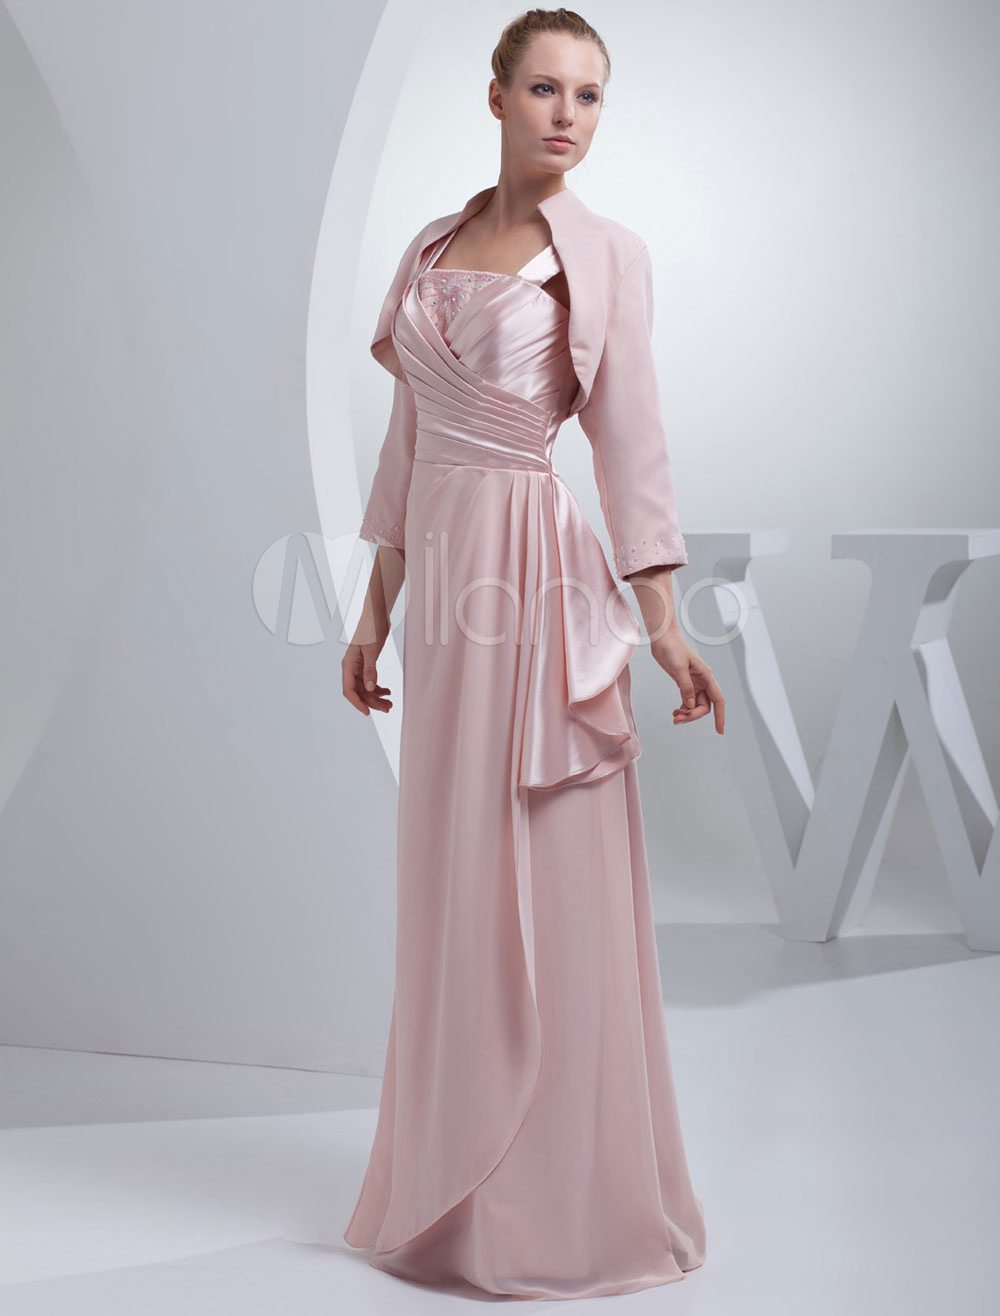 Chiffon Mother of the Bride Dress Suits( including Wrap)A-line Floor-Length Strapless Wedding Party Dress Milanoo